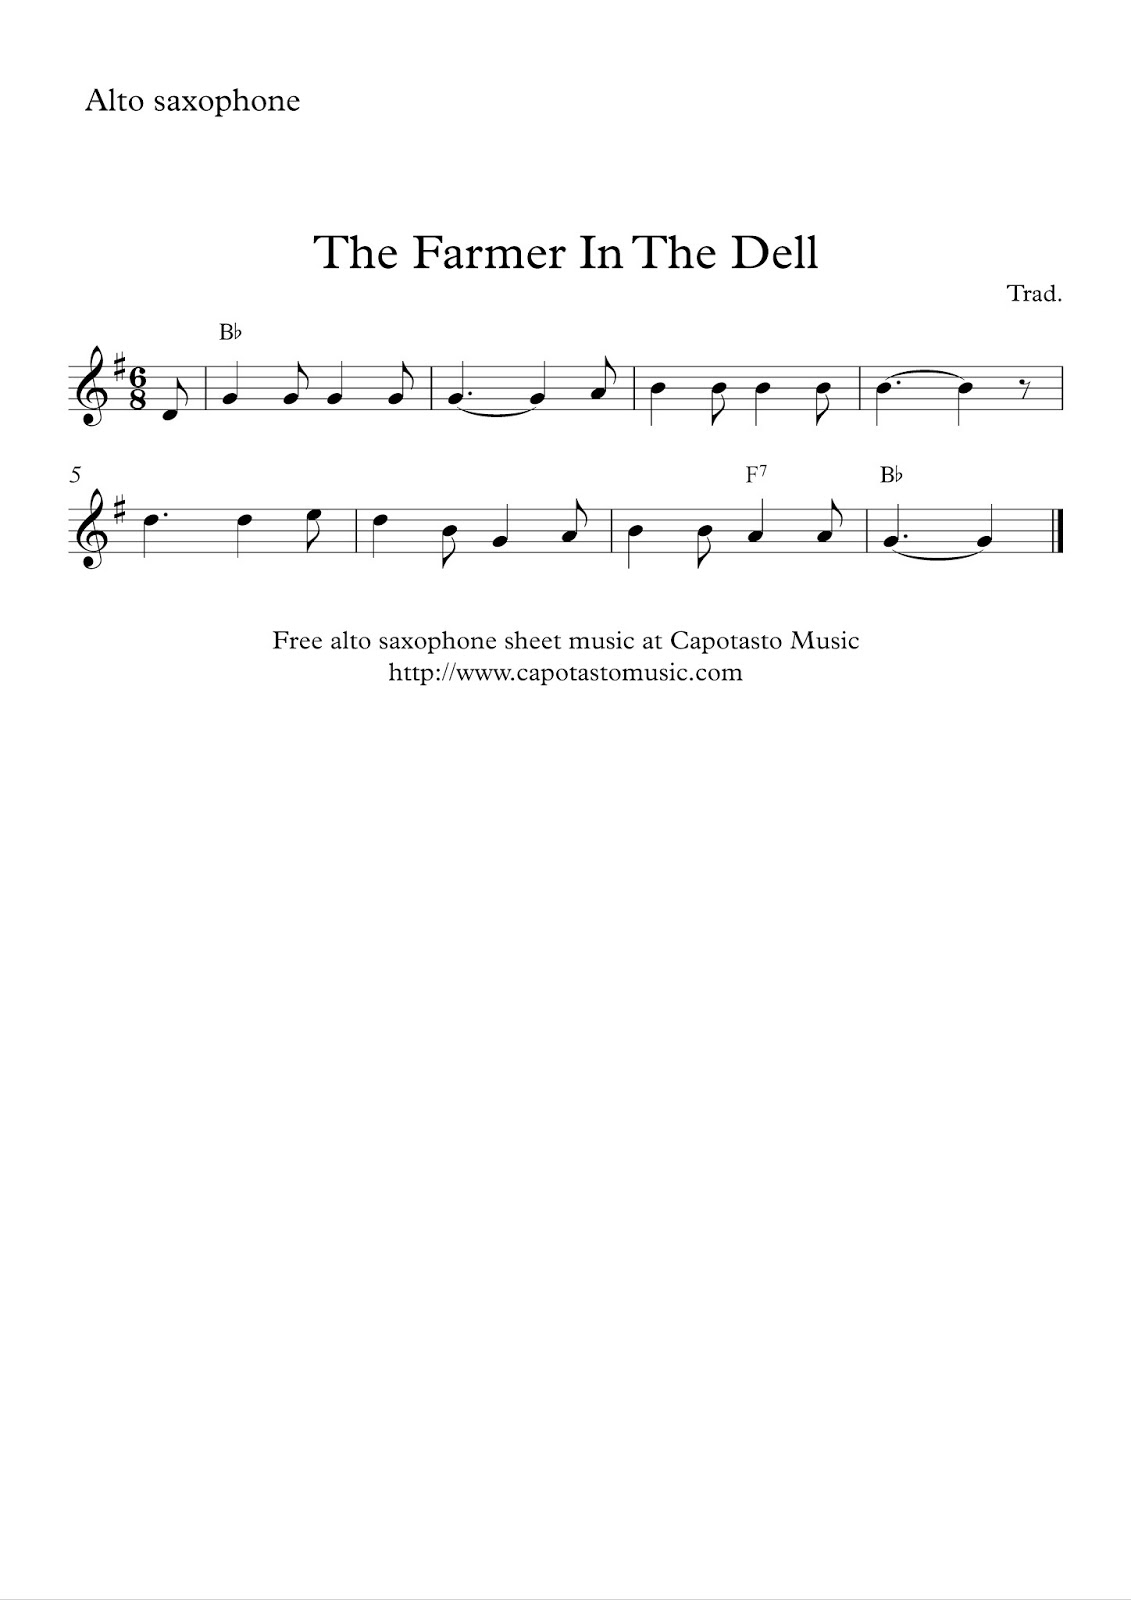 Free easy alto saxophone sheet music, The Farmer In The Dell